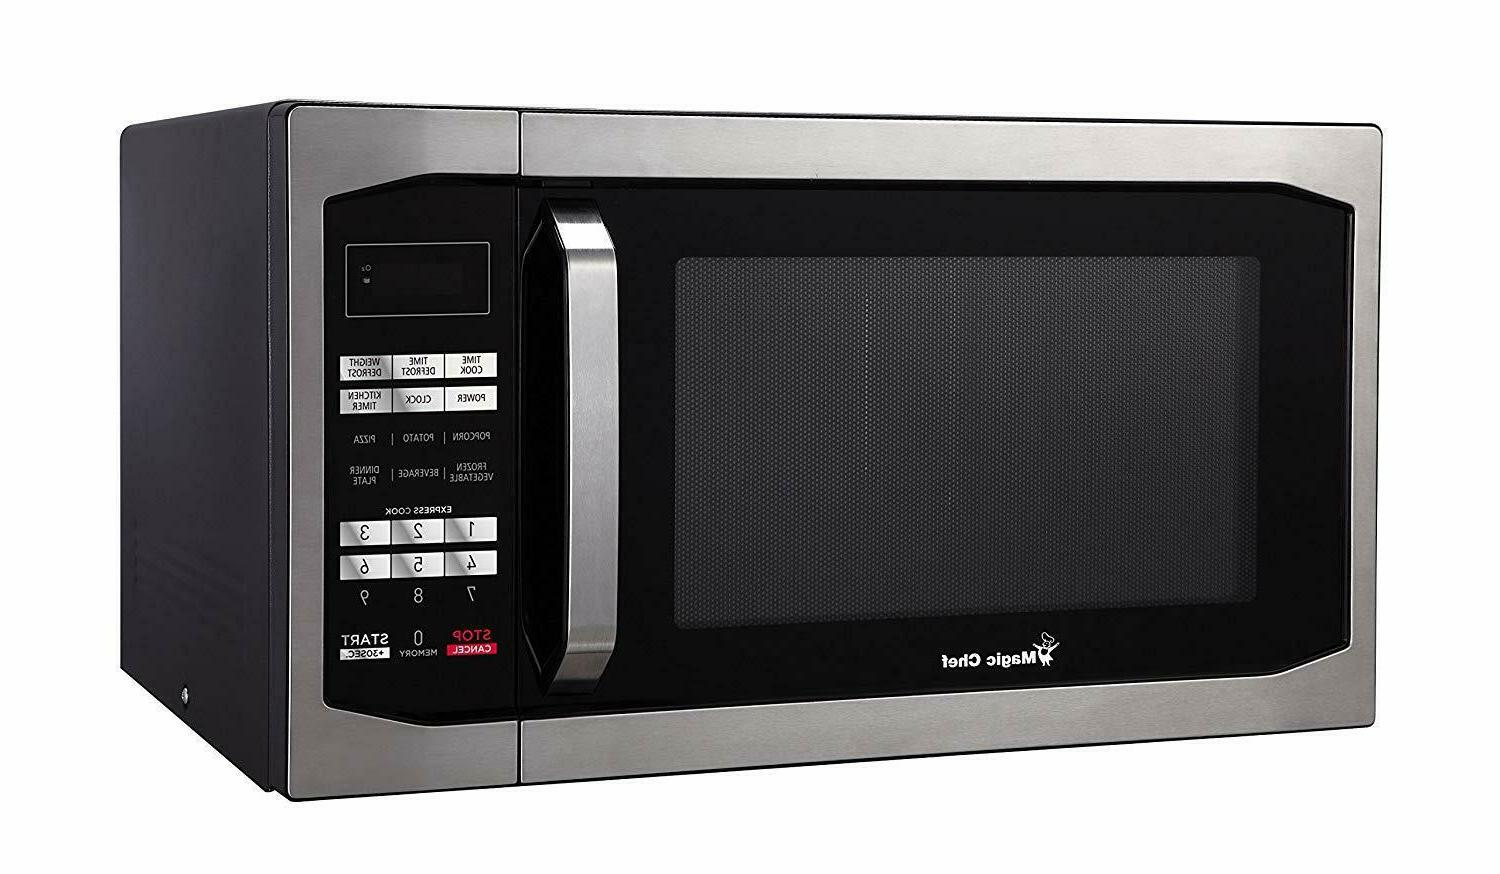 Magic Chef Countertop Microwave 1.6 cu. Gray Cavity Stainless